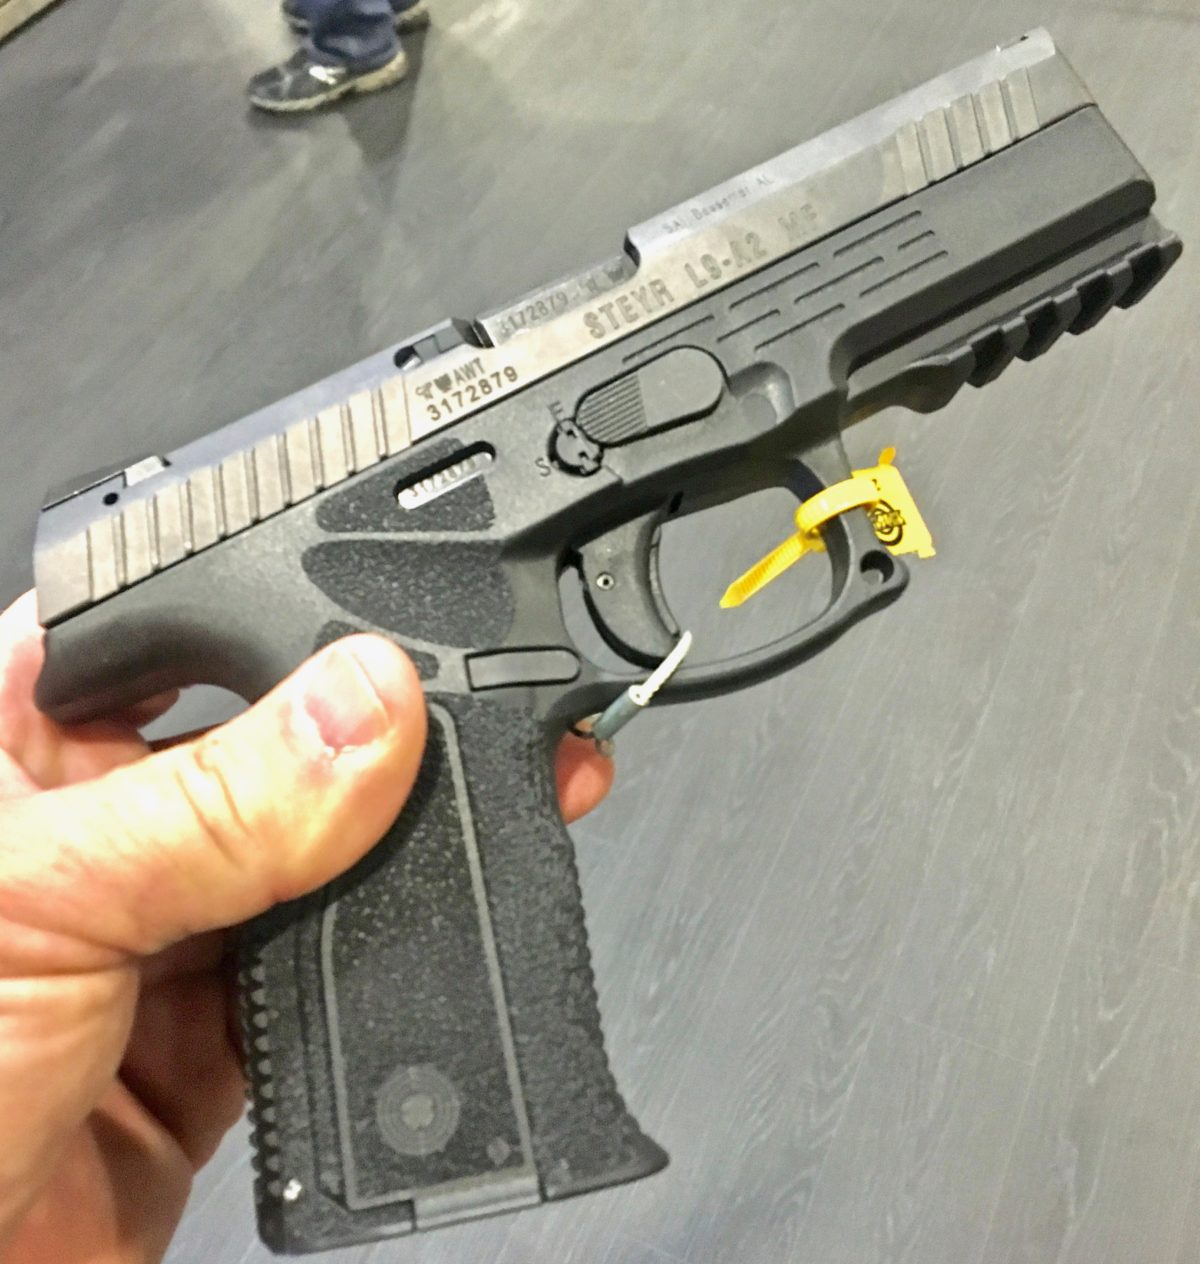 Steyr Updates Pistol, Adds 6 5 CM Options, and Creates a Monoblock